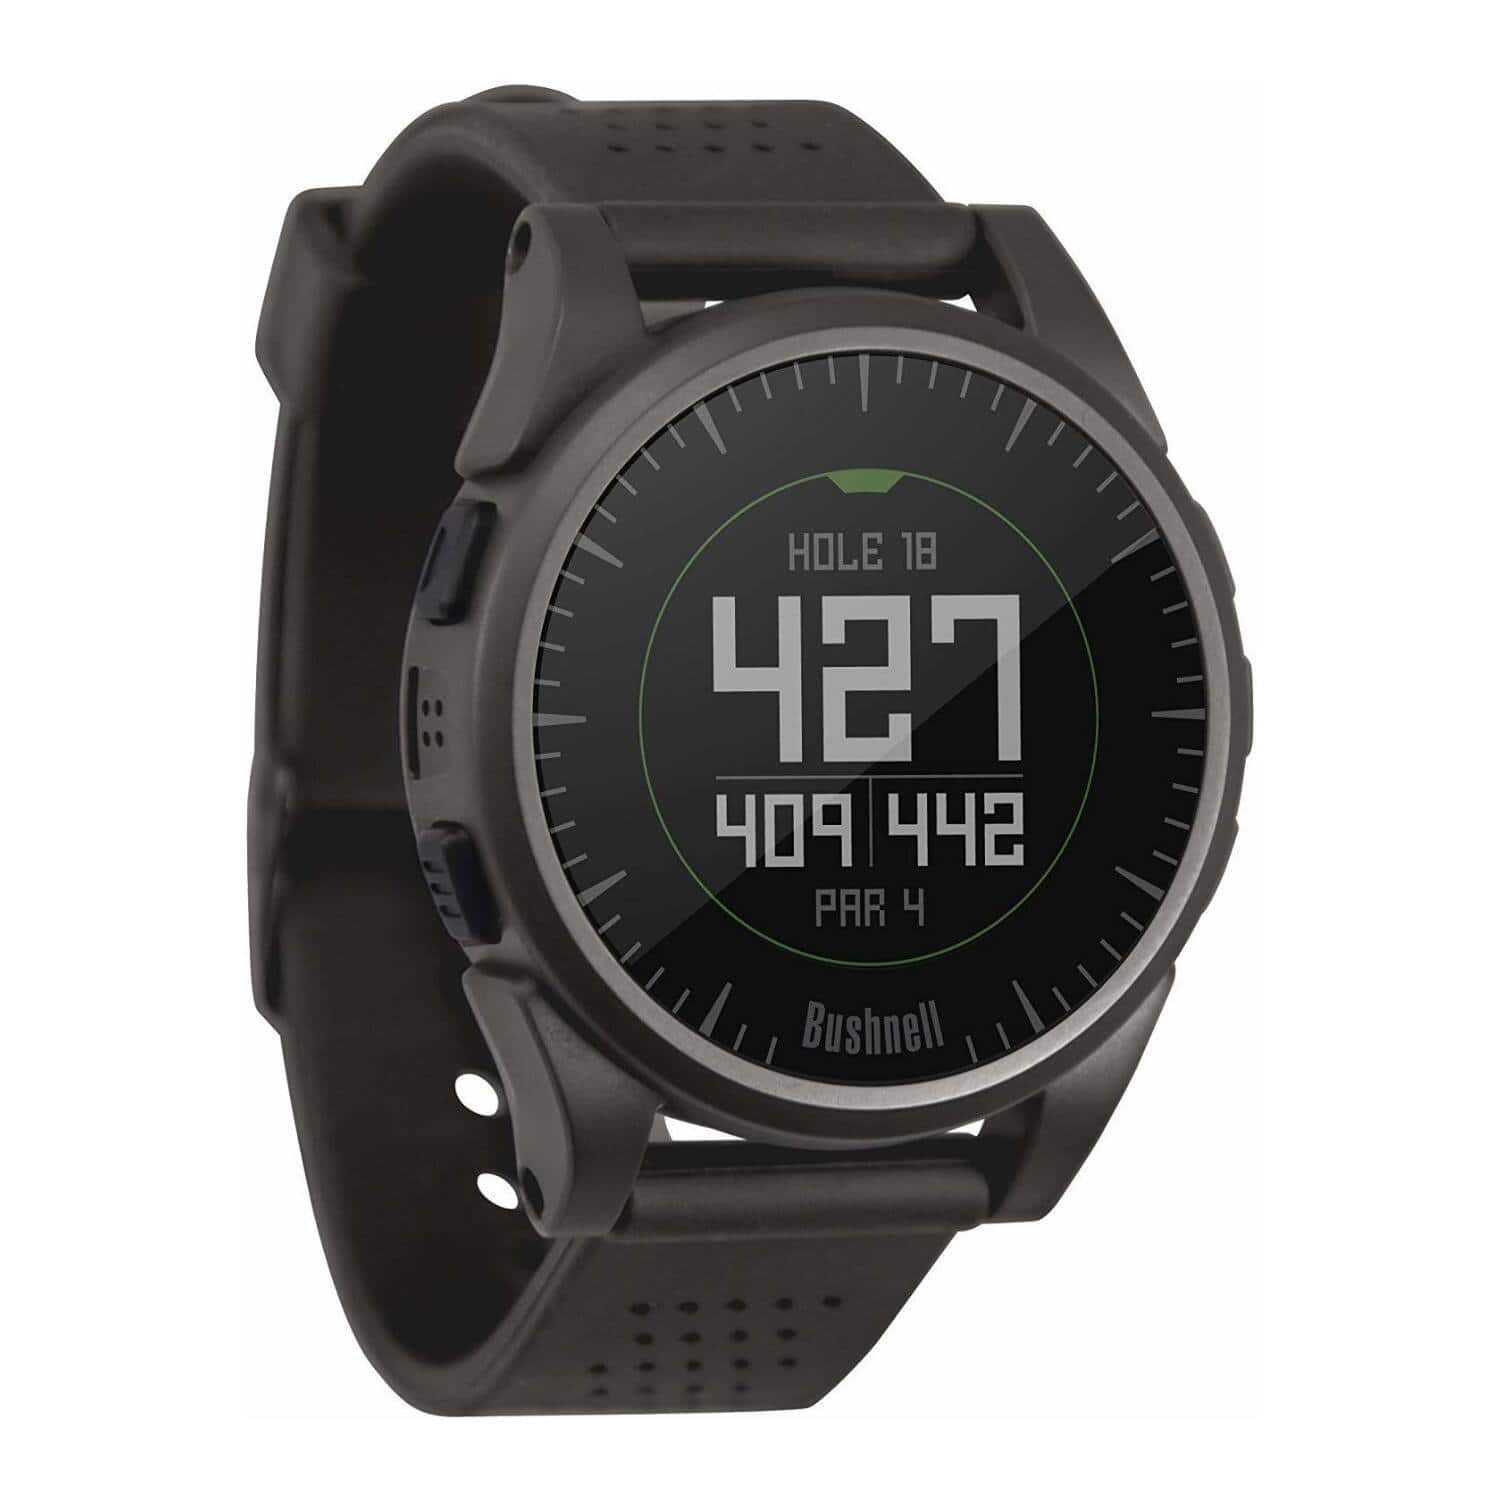 (renewed) Bushnell Excel Golf GPS Preloaded Watch $69 + free s/h